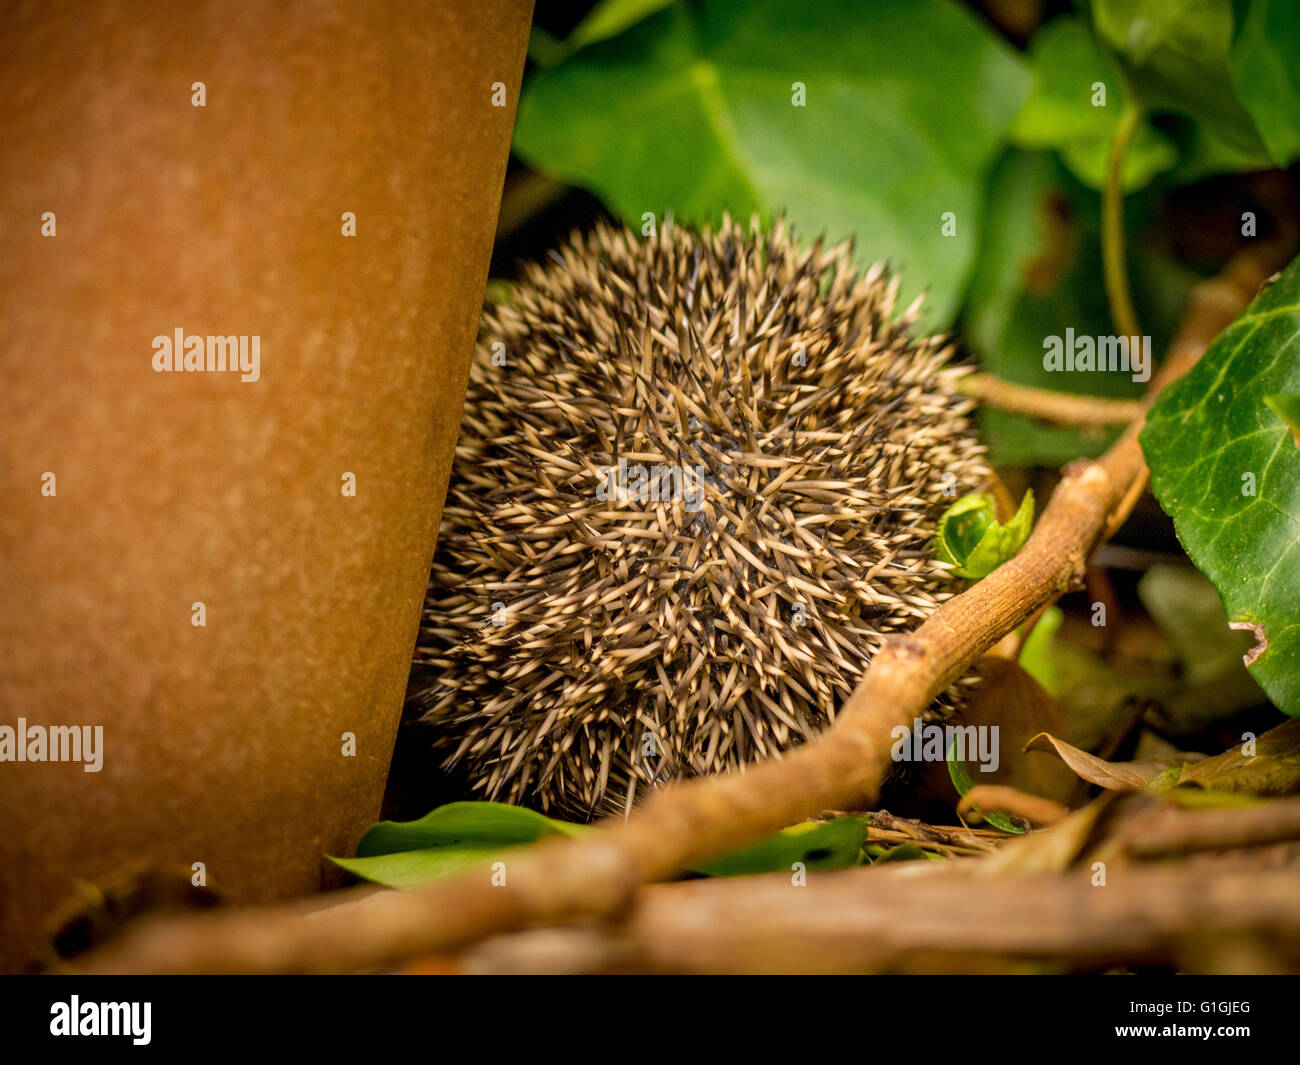 Hedgehog curled up in ball sleeping facing away from camera - Stock Image